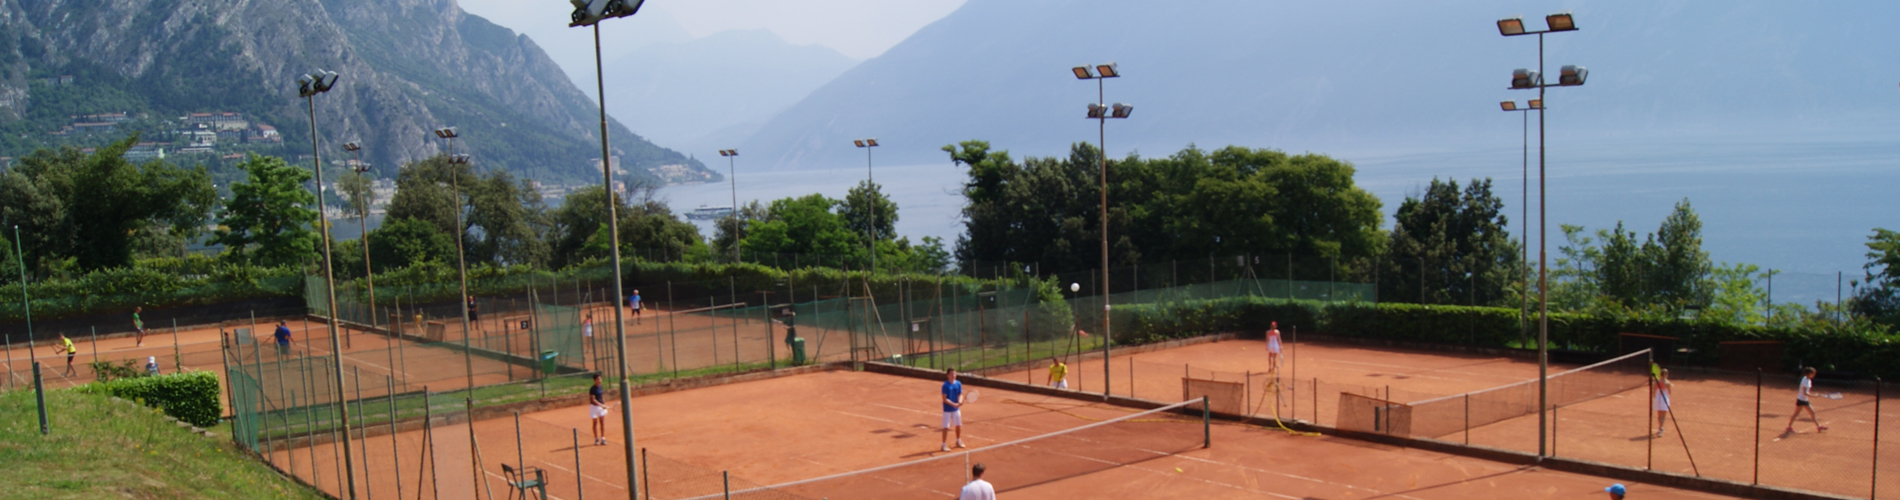 Tennistraining im Tennis-Center Torcol in Limone sul Garda